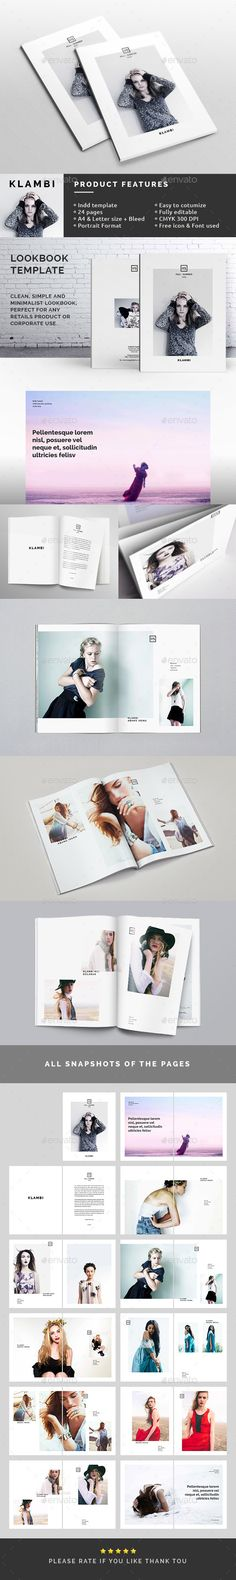 Fashion Lookbook Template — InDesign INDD #trendy #print • Available here → https://graphicriver.net/item/fashion-lookbook-template/10486087?ref=pxcr